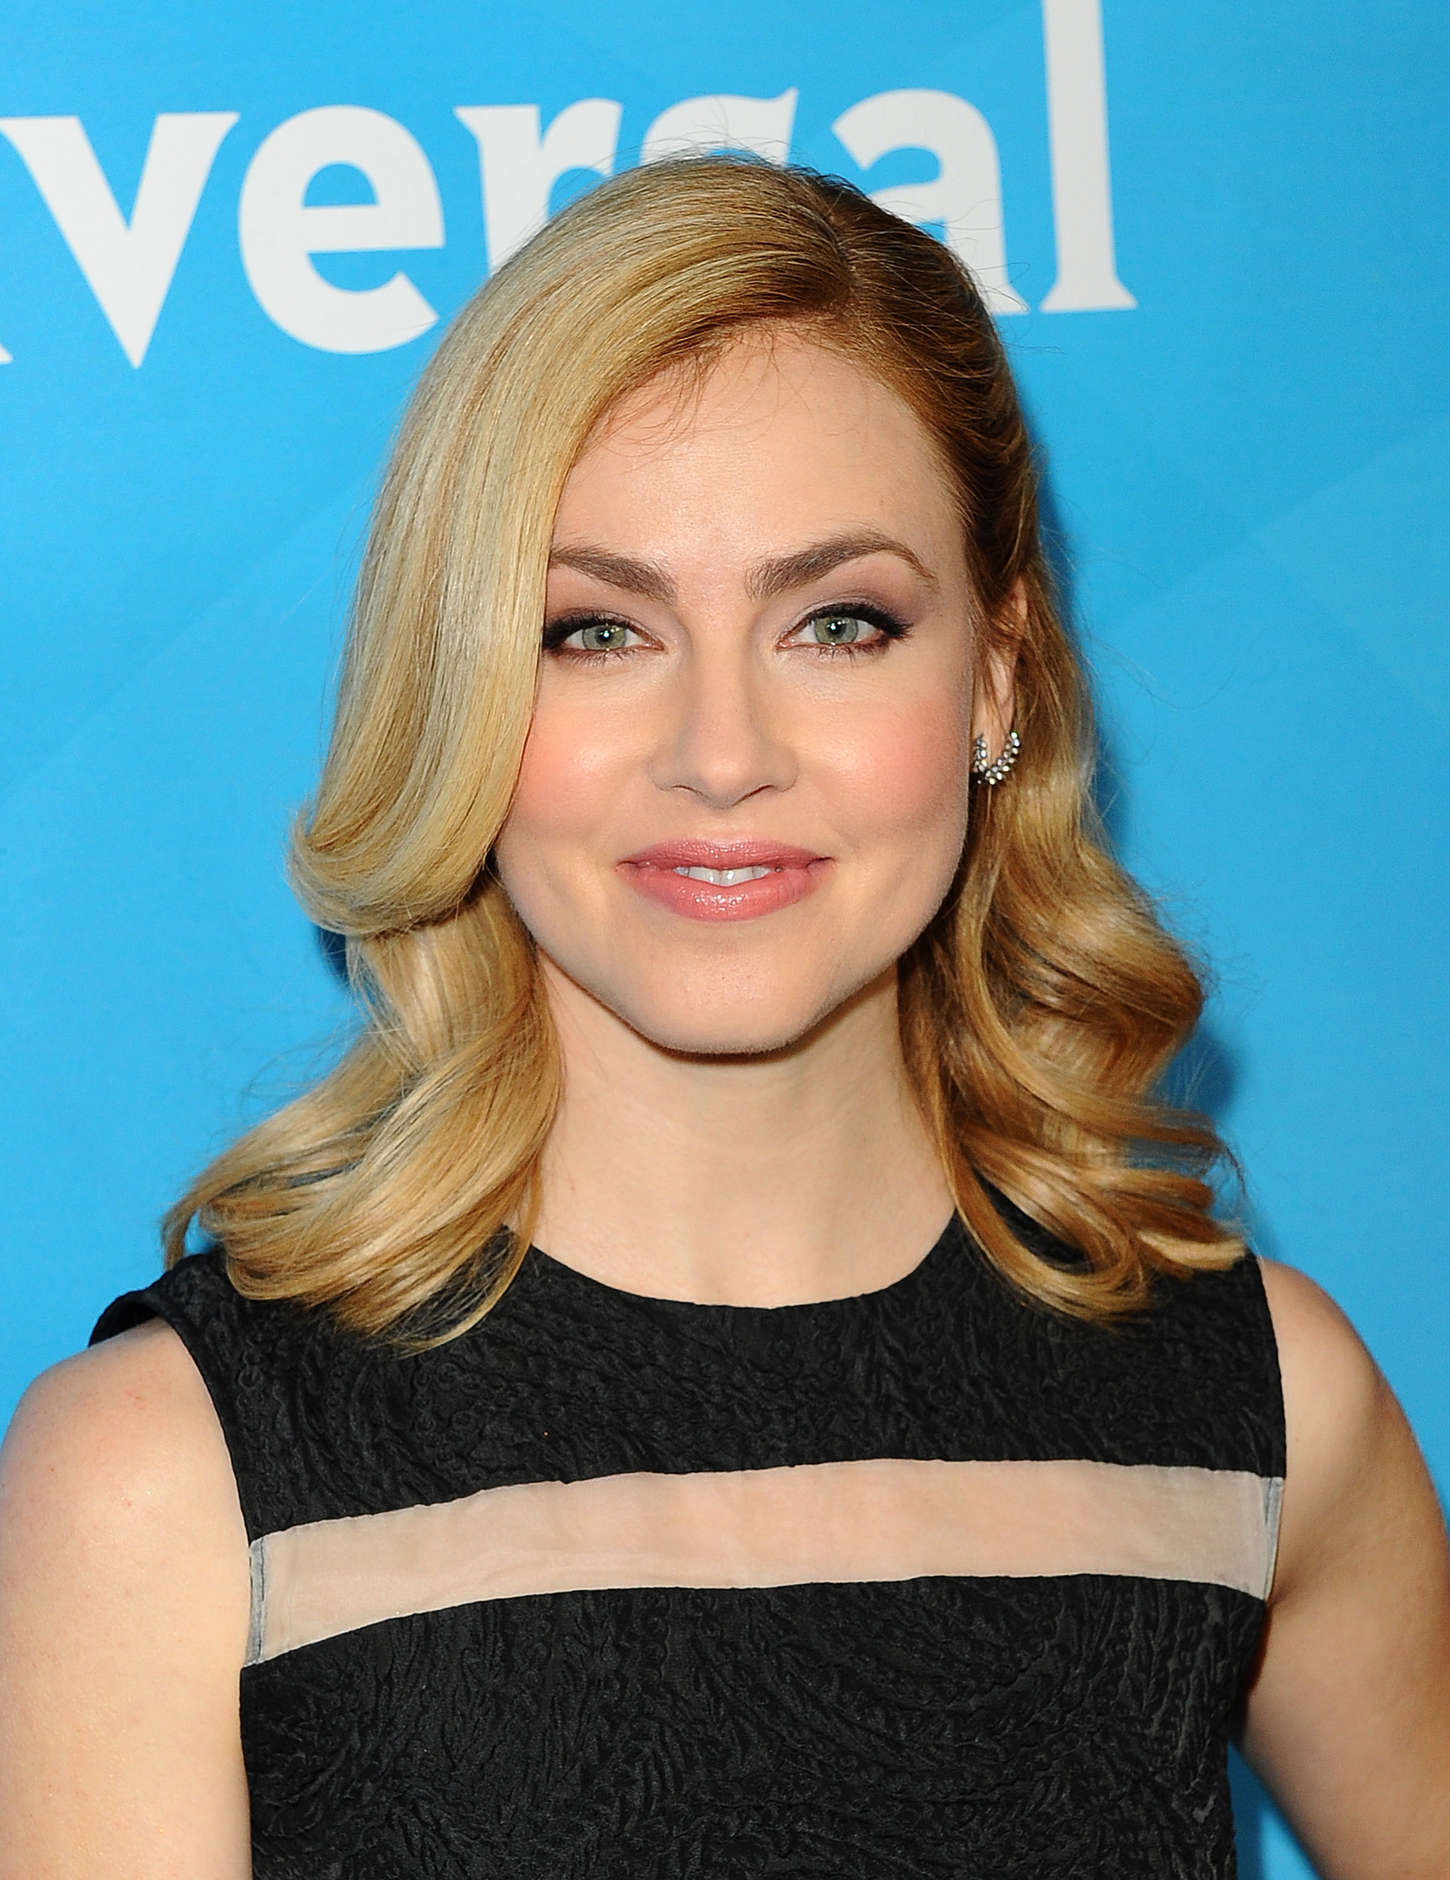 amanda schull wikiamanda schull interview, amanda schull husband, amanda schull twitter, amanda schull suits, amanda schull fansite, amanda schull height, amanda schull and rebecca schull, amanda schull instagram, amanda schull facebook, amanda schull wallpaper, amanda schull and aaron stanford, amanda schull reddit, amanda schull imdb, amanda schull, amanda schull pretty little liars, amanda schull ballet, amanda schull dancing, amanda schull wiki